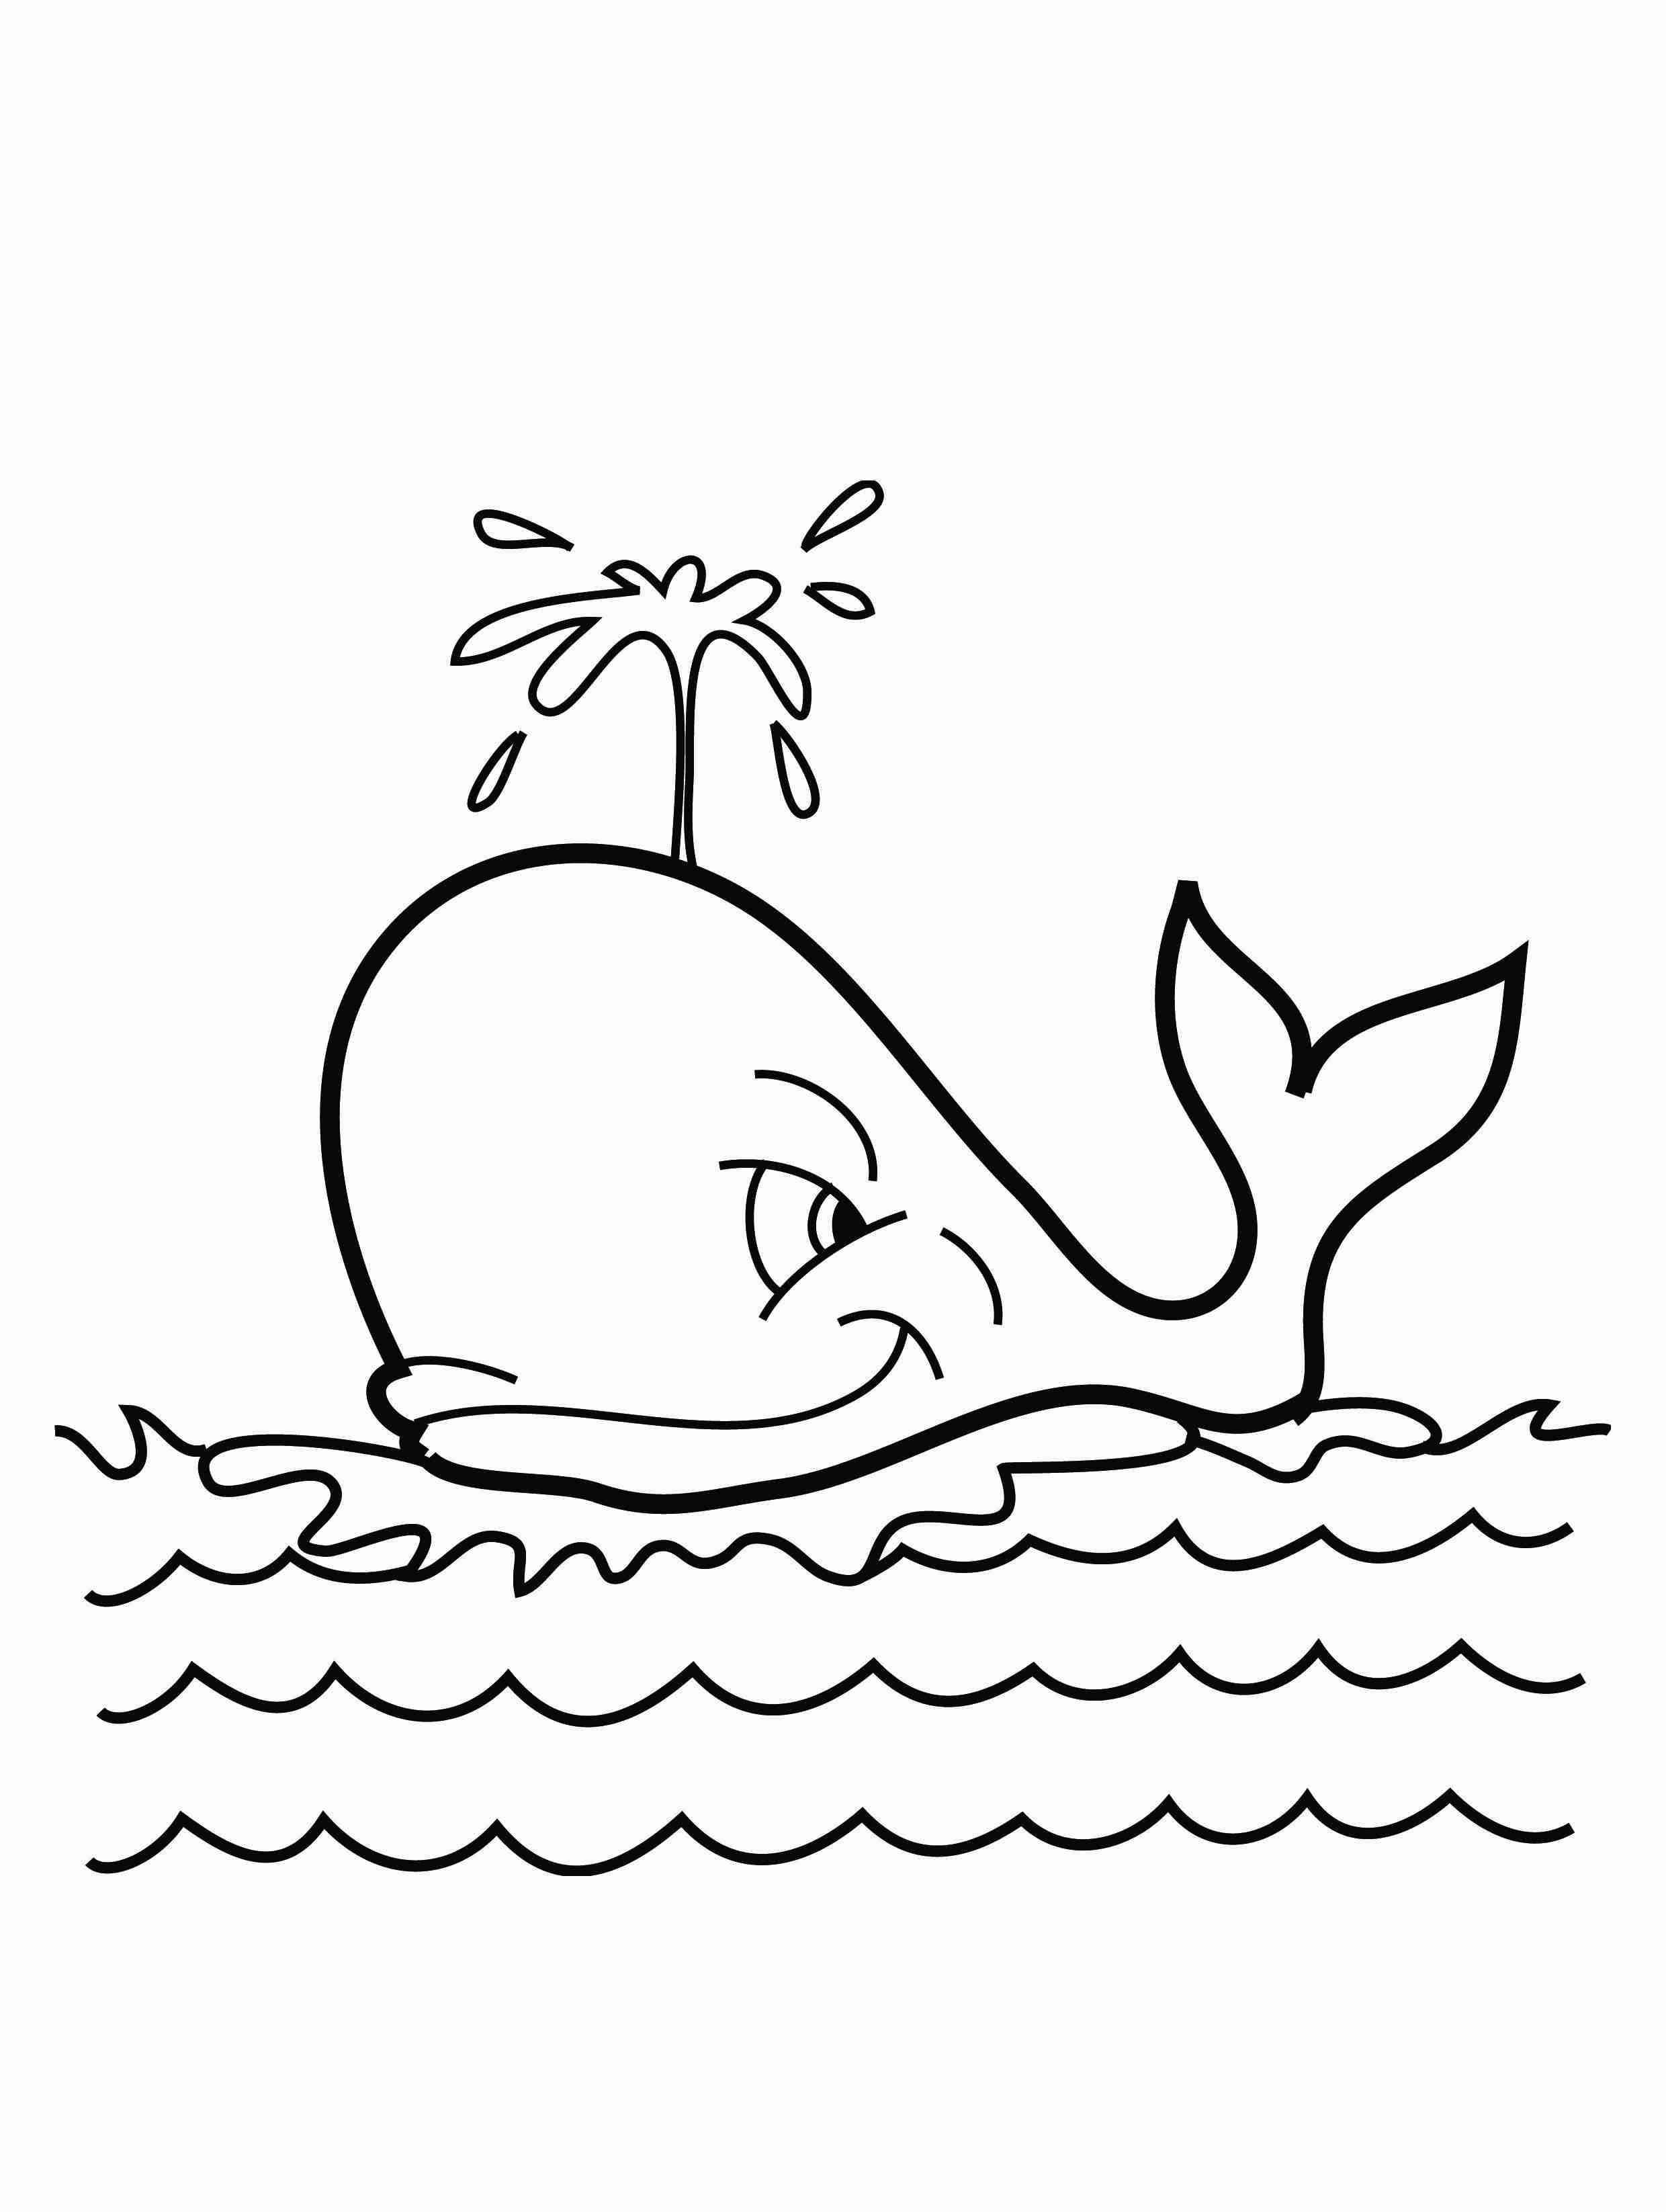 Shamu Coloring Pages Killer Whale Coloring Pages For Kids At Getdrawings Free For